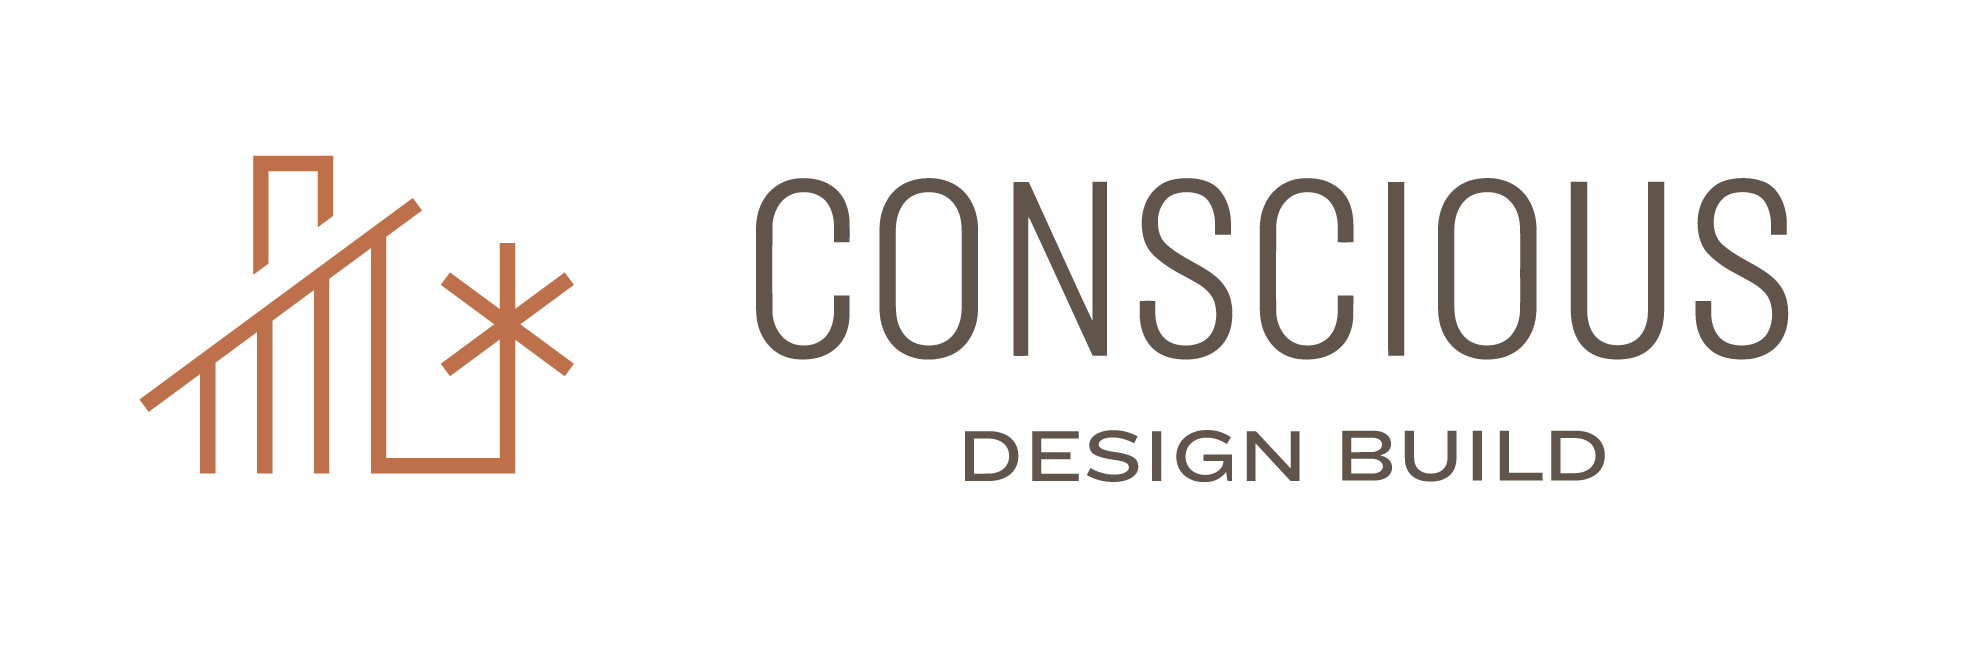 Conscious Design Build - Green Home Builder & Designer in Ashland, OR